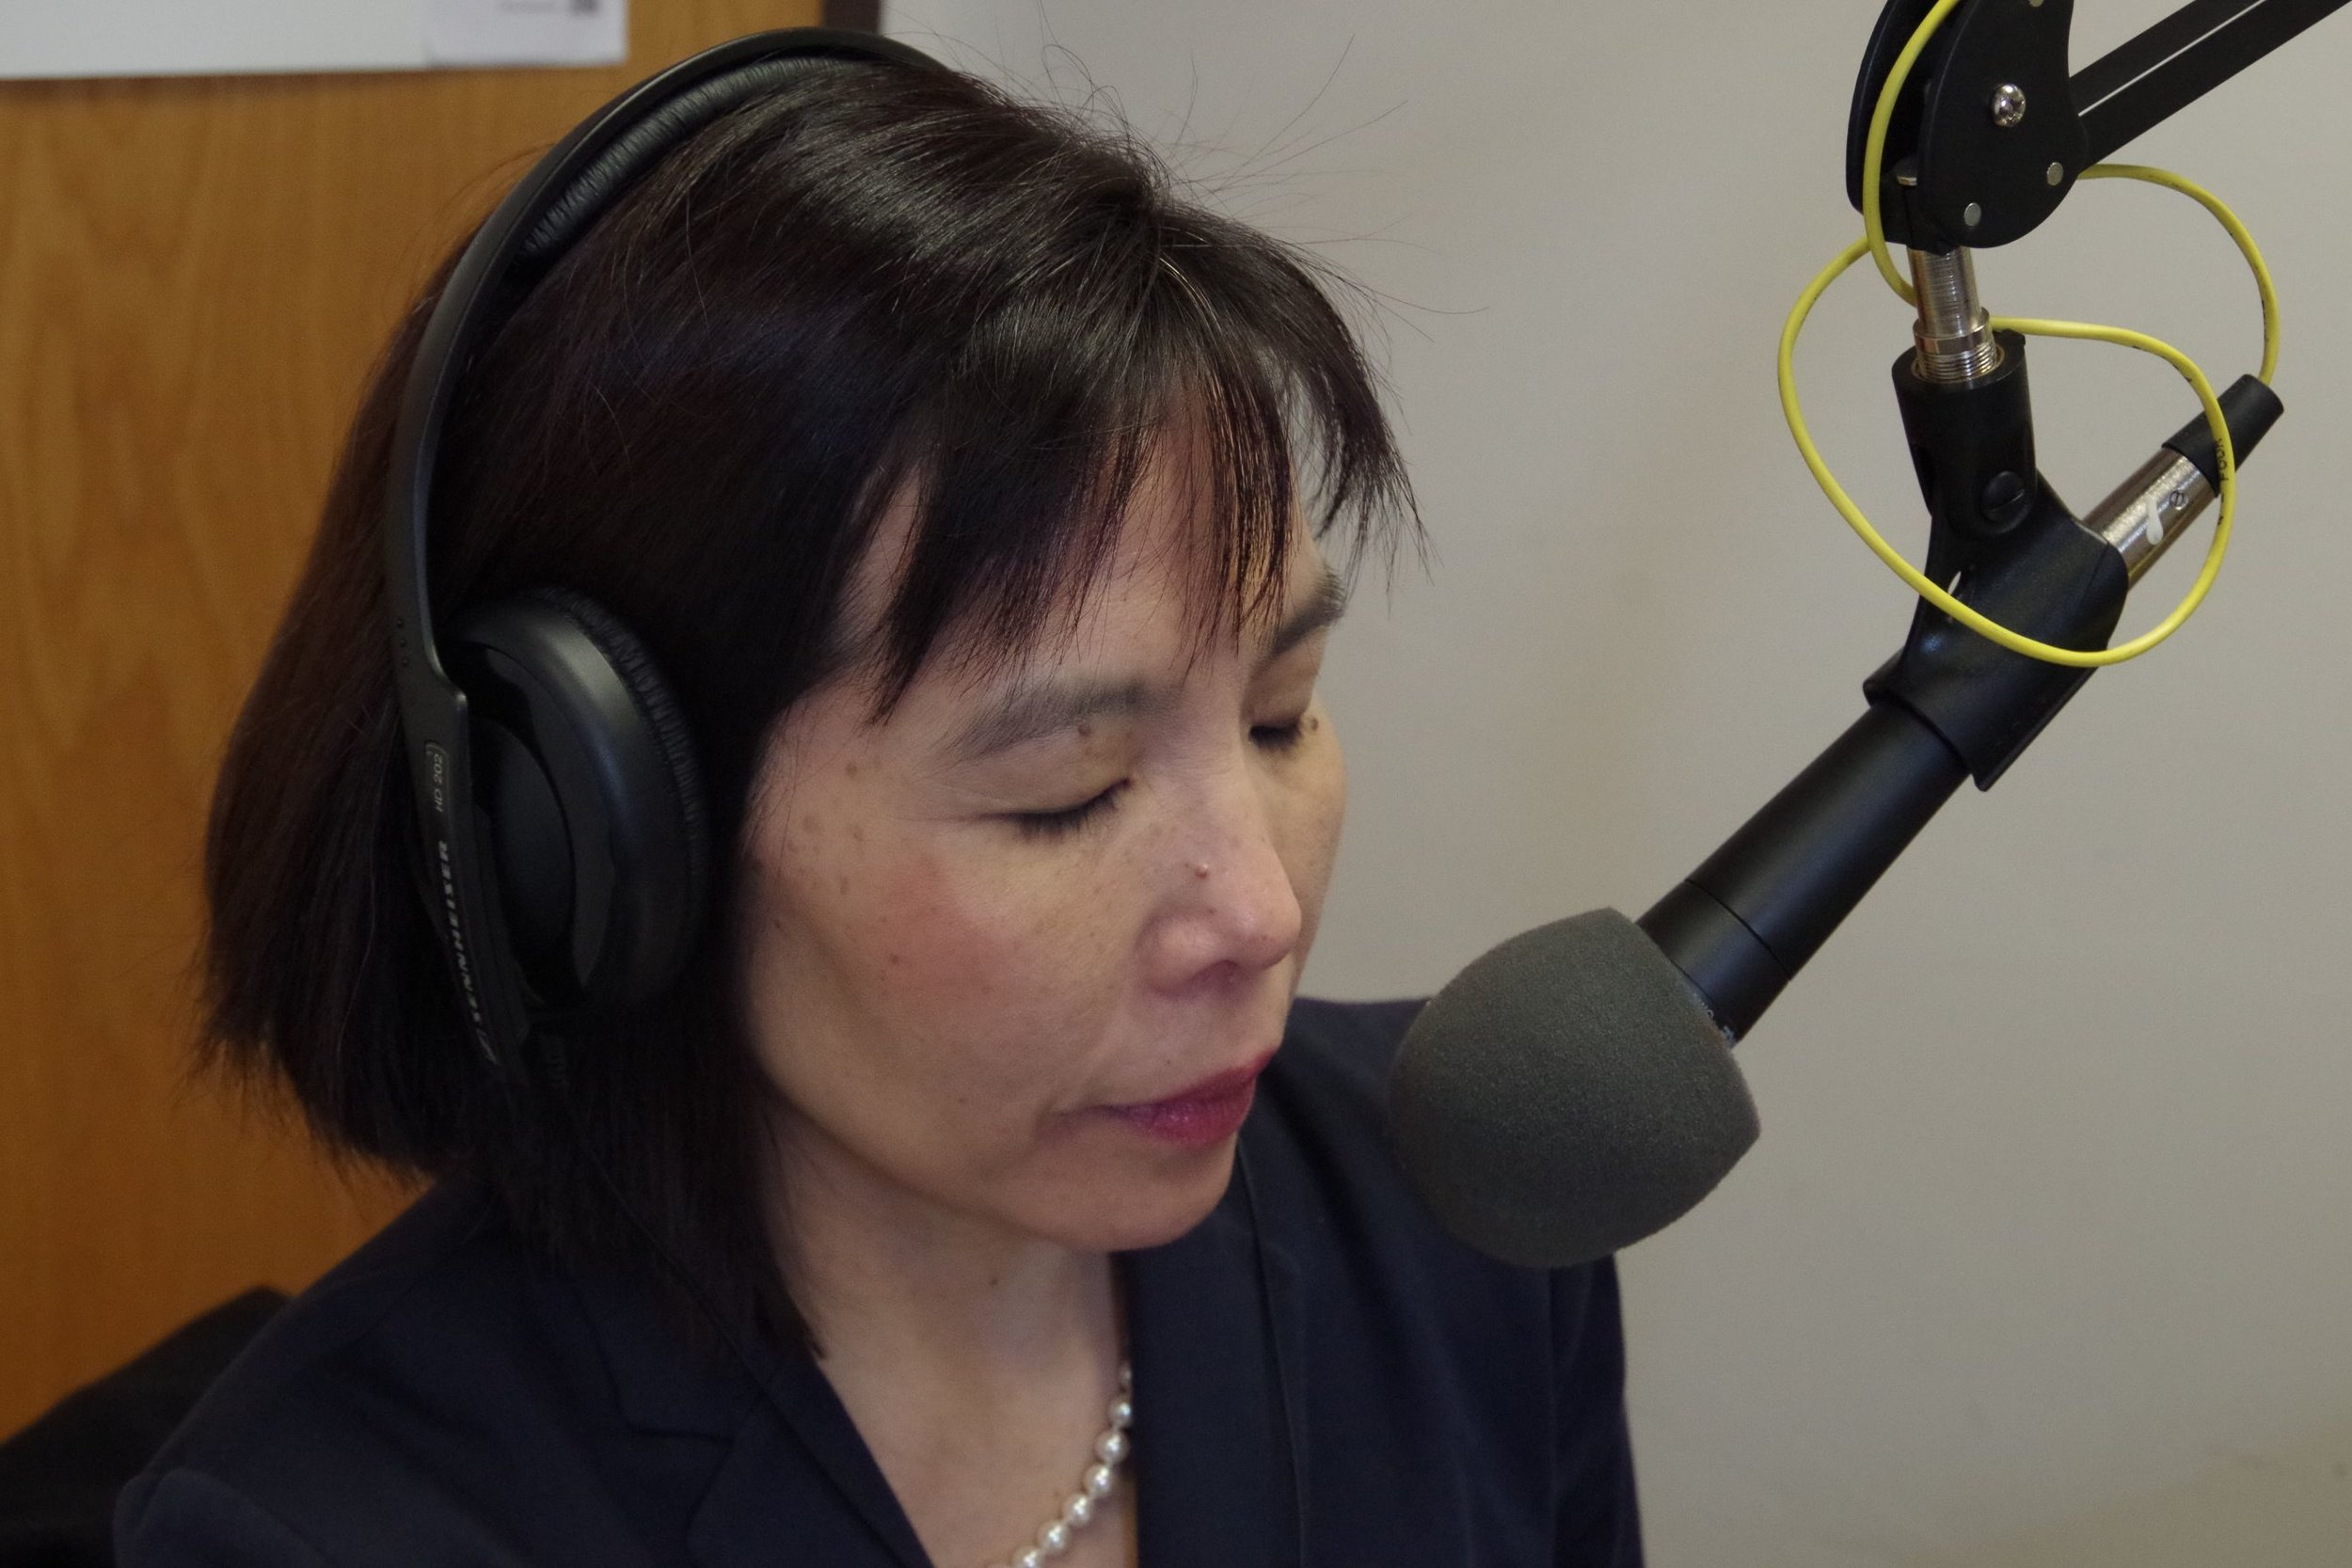 Host Betsy Kim talk with Pierre Barbour, the Executive Director at New Haven Solid Waste & Recycling Authority.